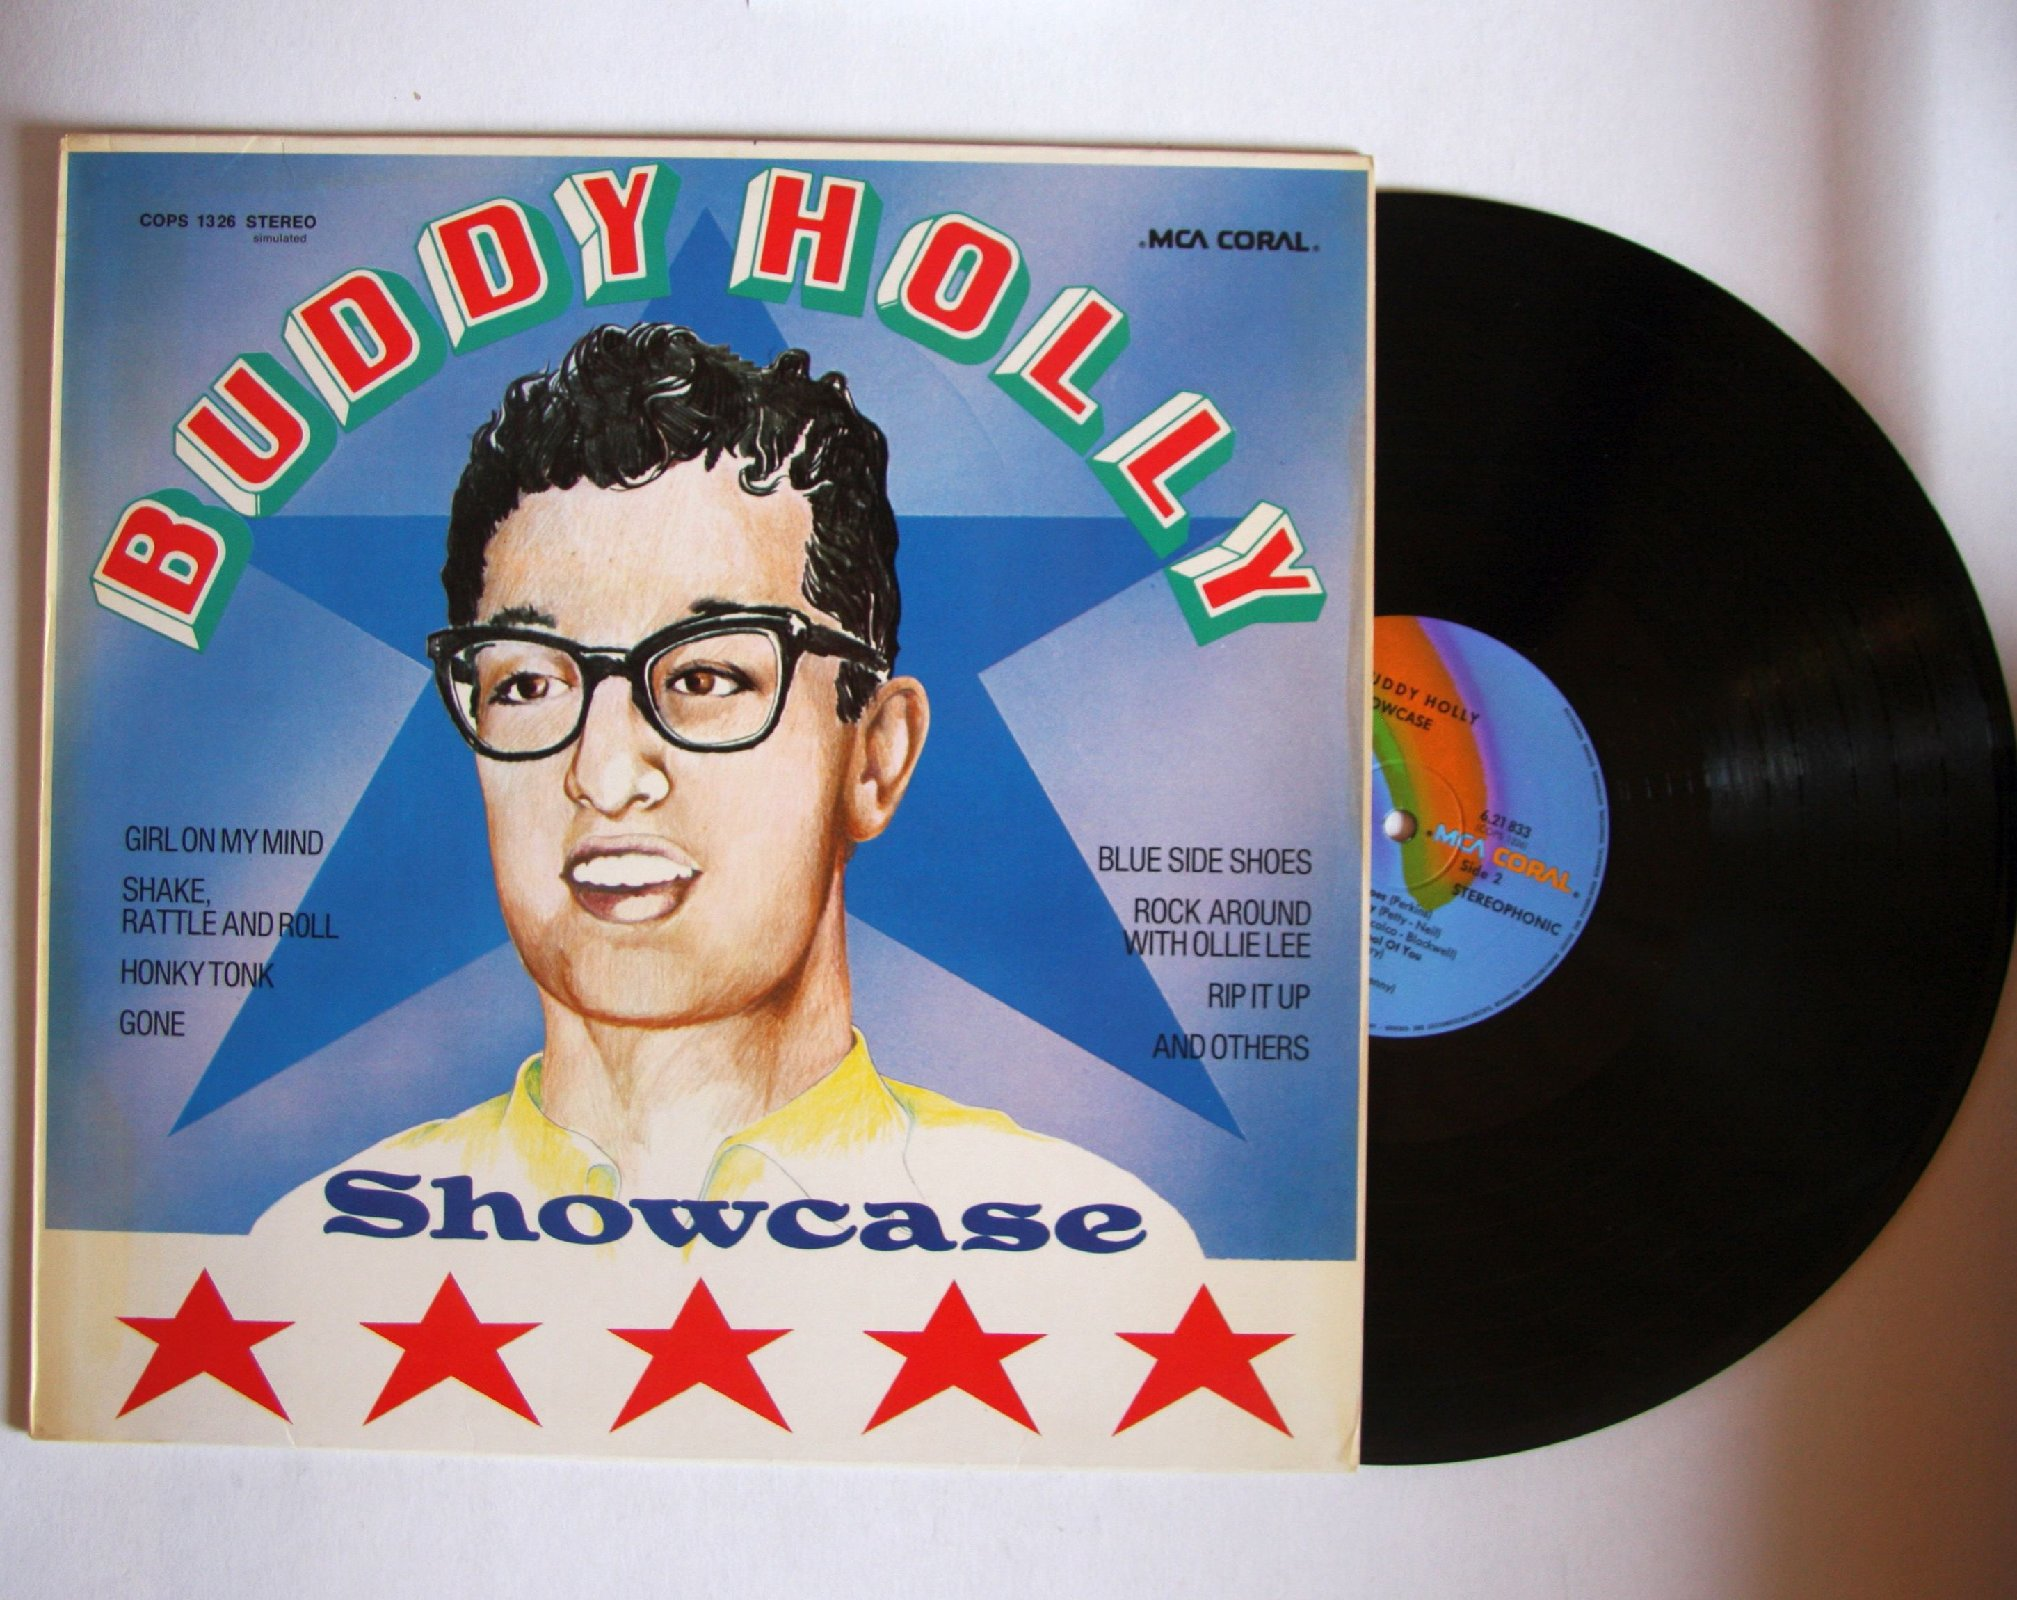 Buddy Holly - Showcase Album